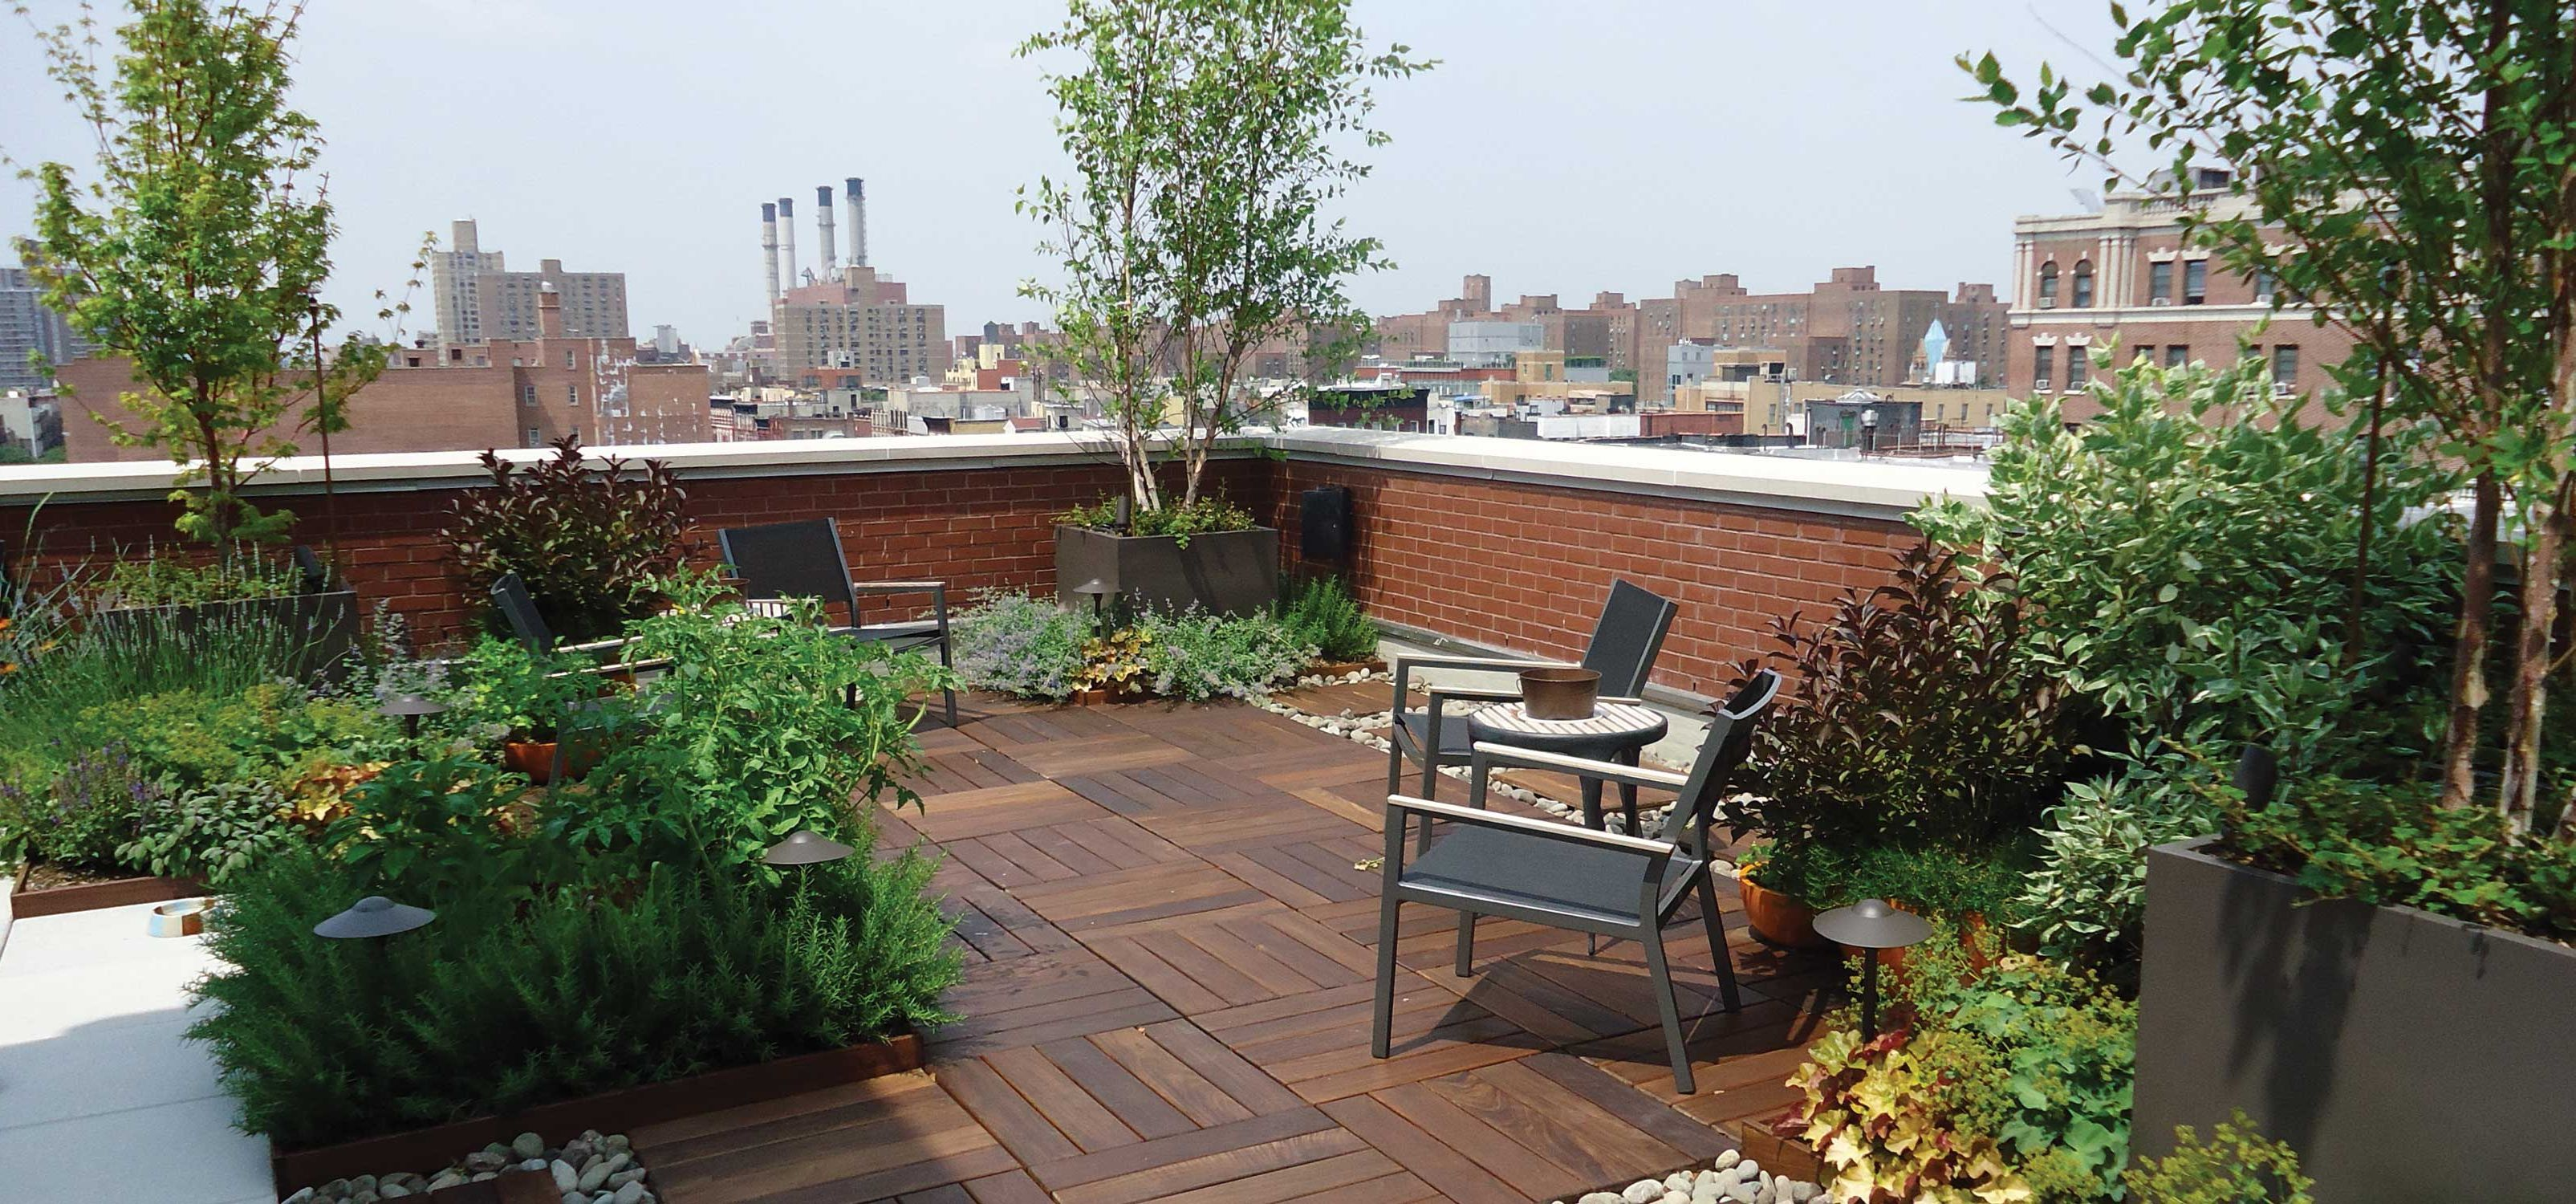 Outdoor , Beautiful Cozy Terrace Garden Picture : Interesting Rooftop Terrace  Garden Design Ideas